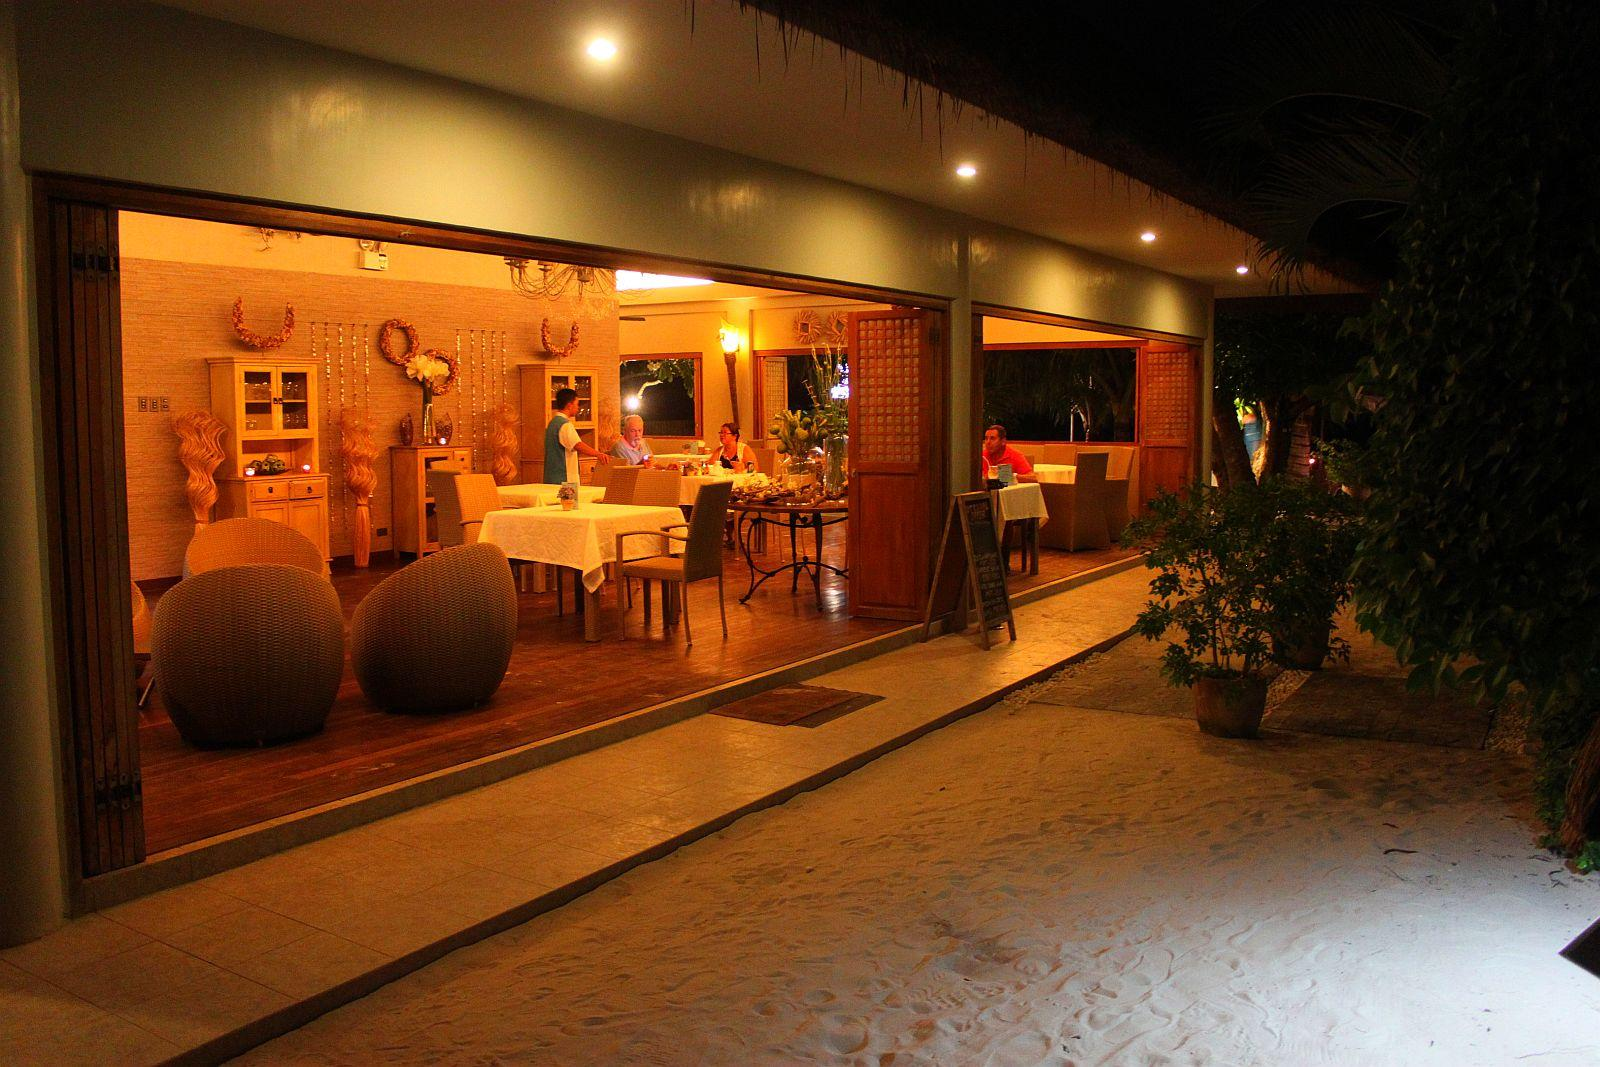 Linaw beach resort pearl restaurant bohol